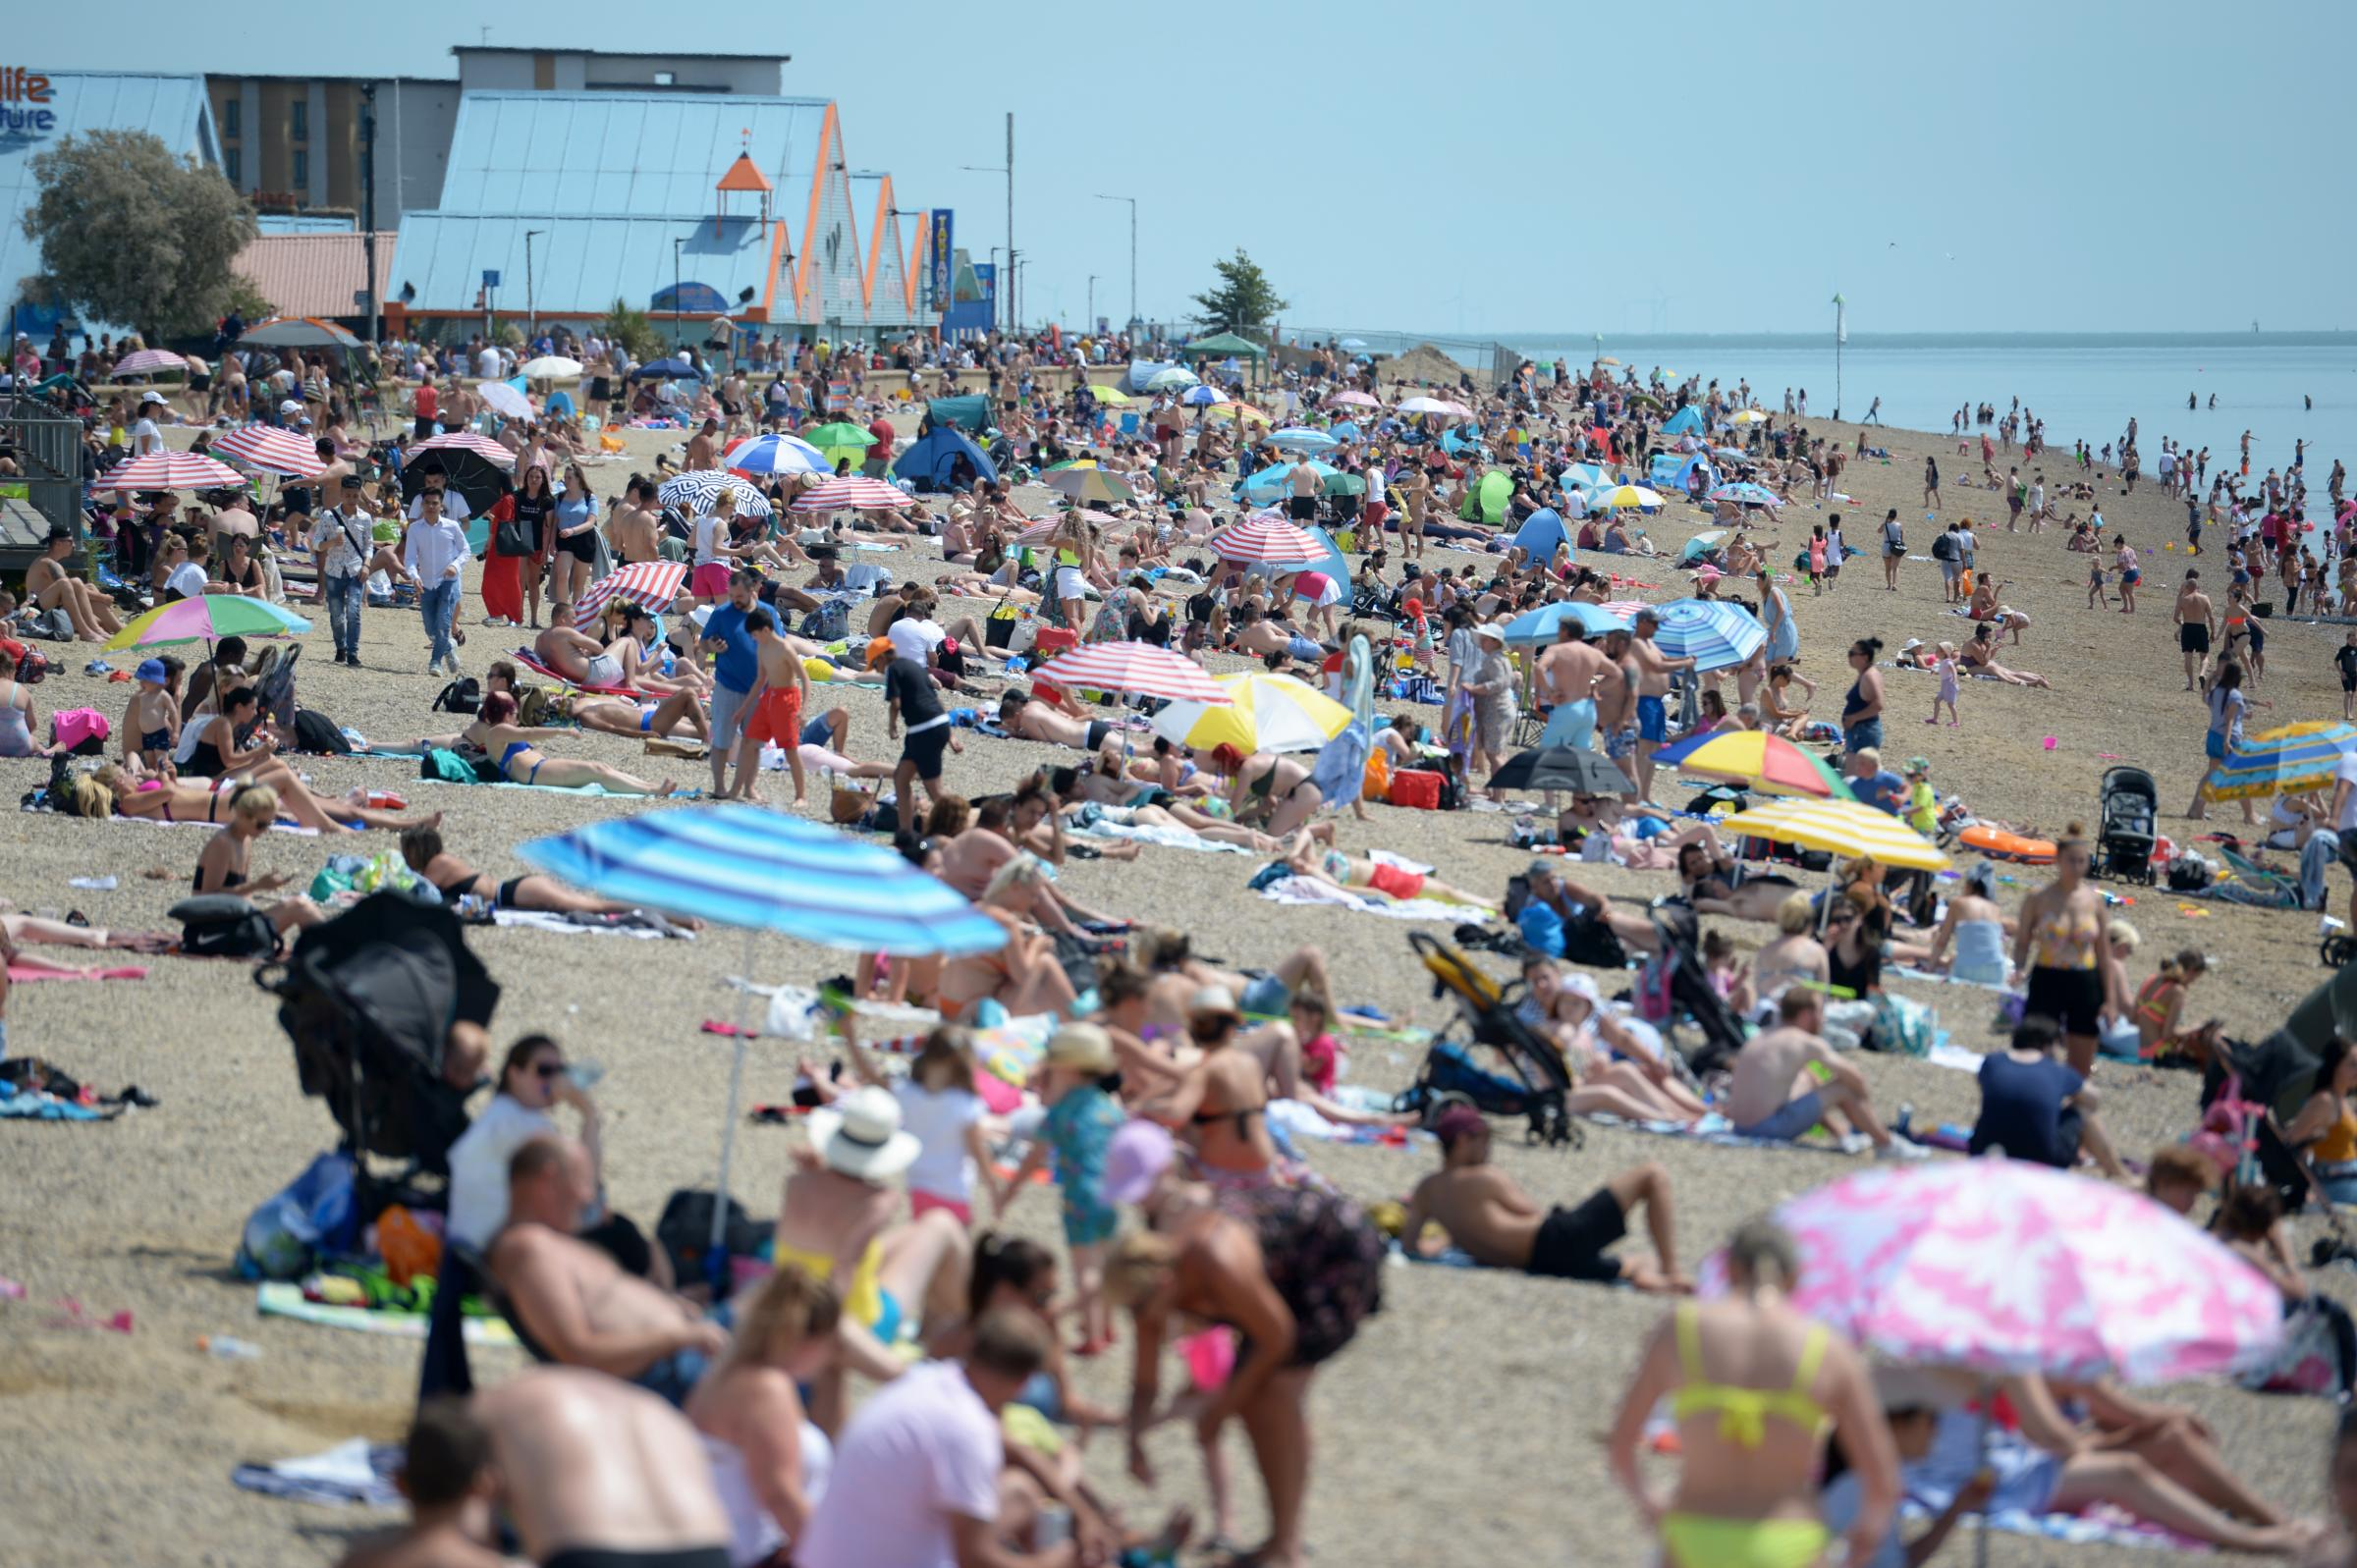 People enjoying the good weather on the beach at Southend